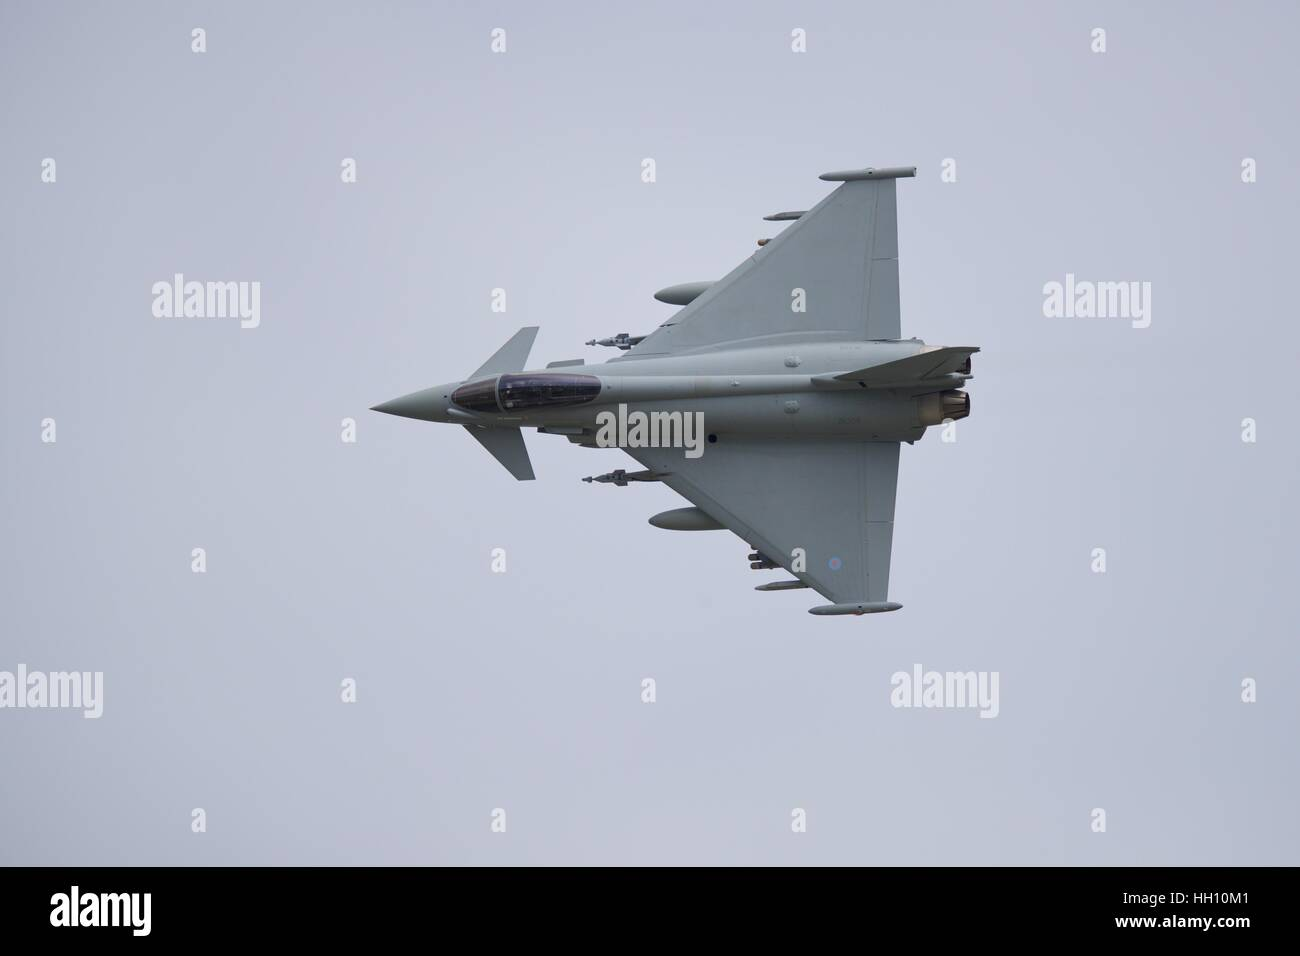 BAE Systems Eurofighter Typhoon - Stock Image